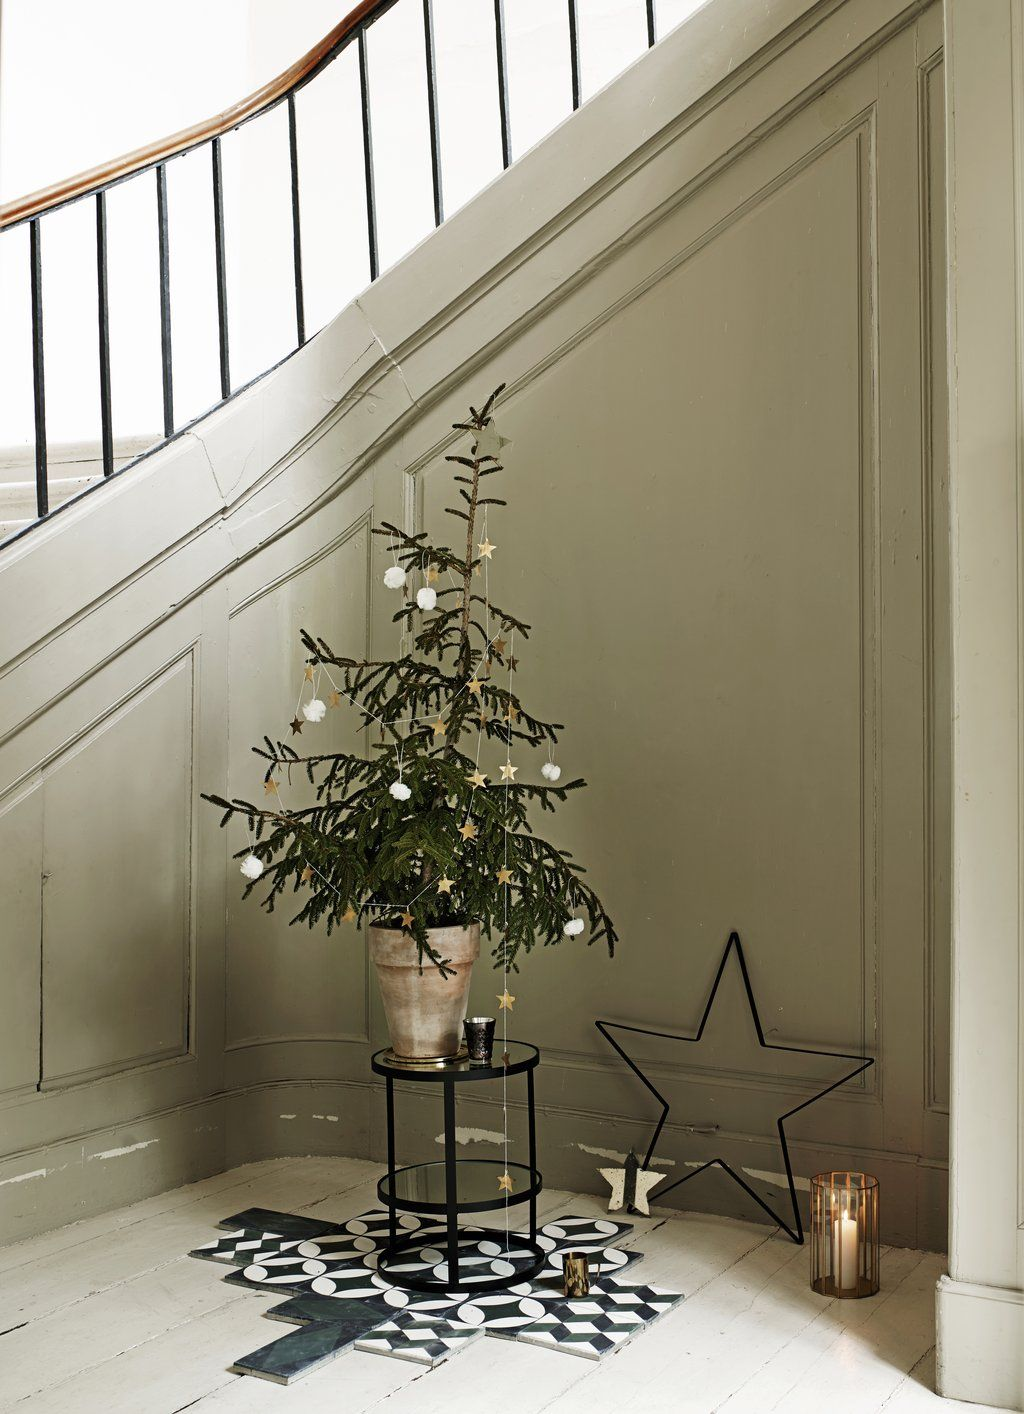 Add the christmas feeling by decorating with trees and stars from tinekhome.